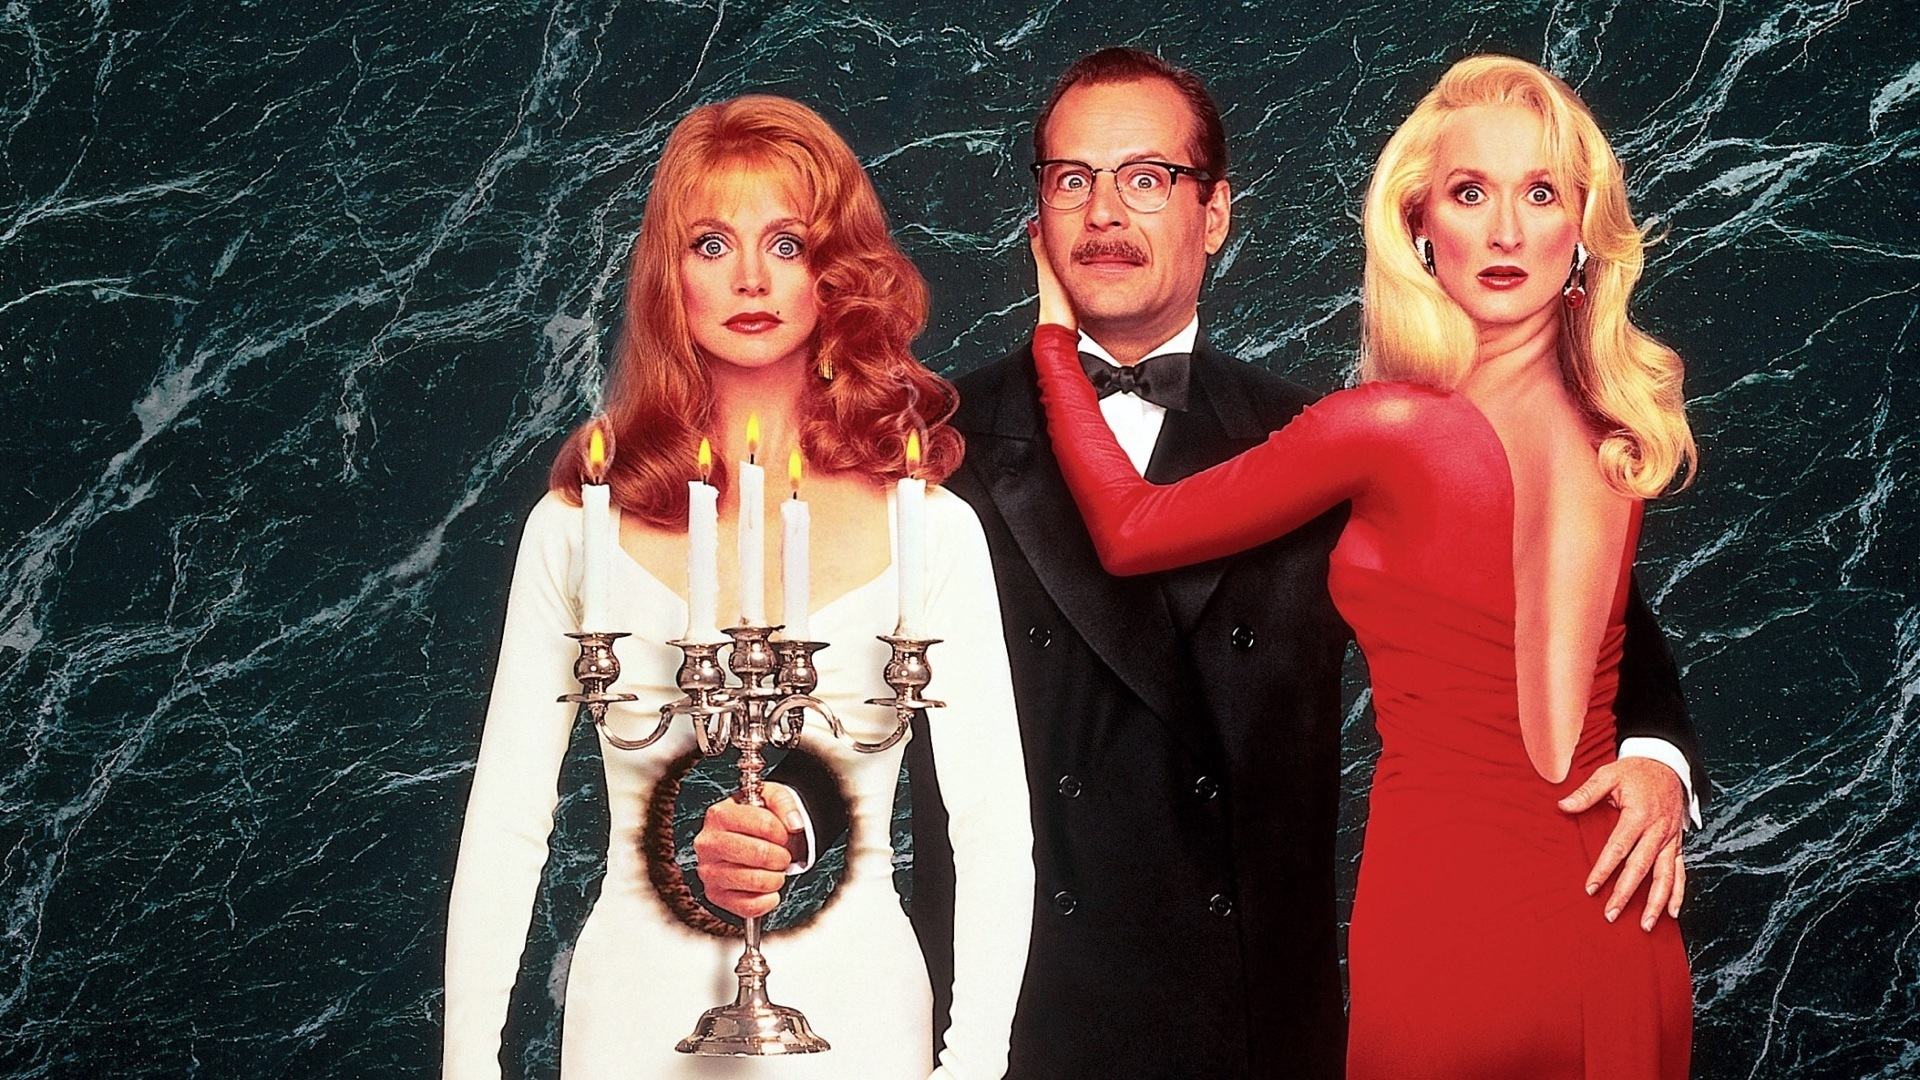 Death-Becomes-Her-death-becomes-her-33027585-1920-1080